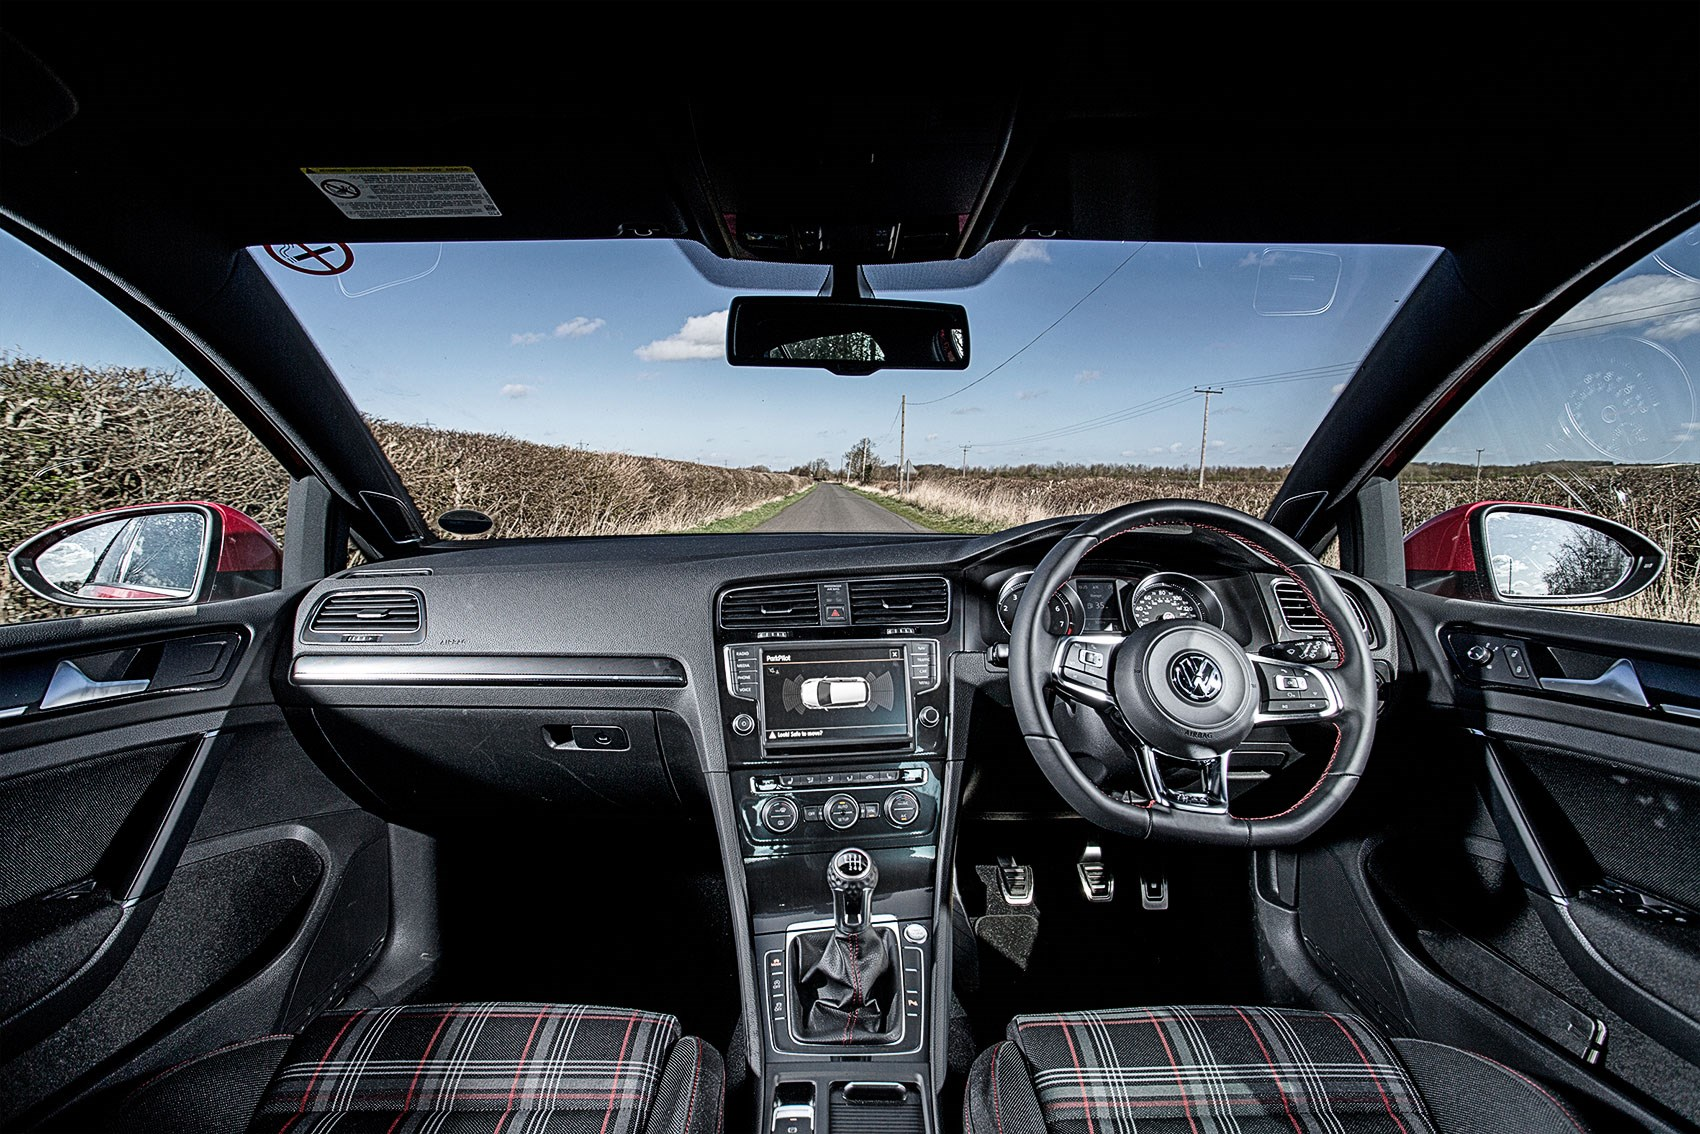 vw golf gti 2015 long term test review of mk7 gti by car magazine. Black Bedroom Furniture Sets. Home Design Ideas